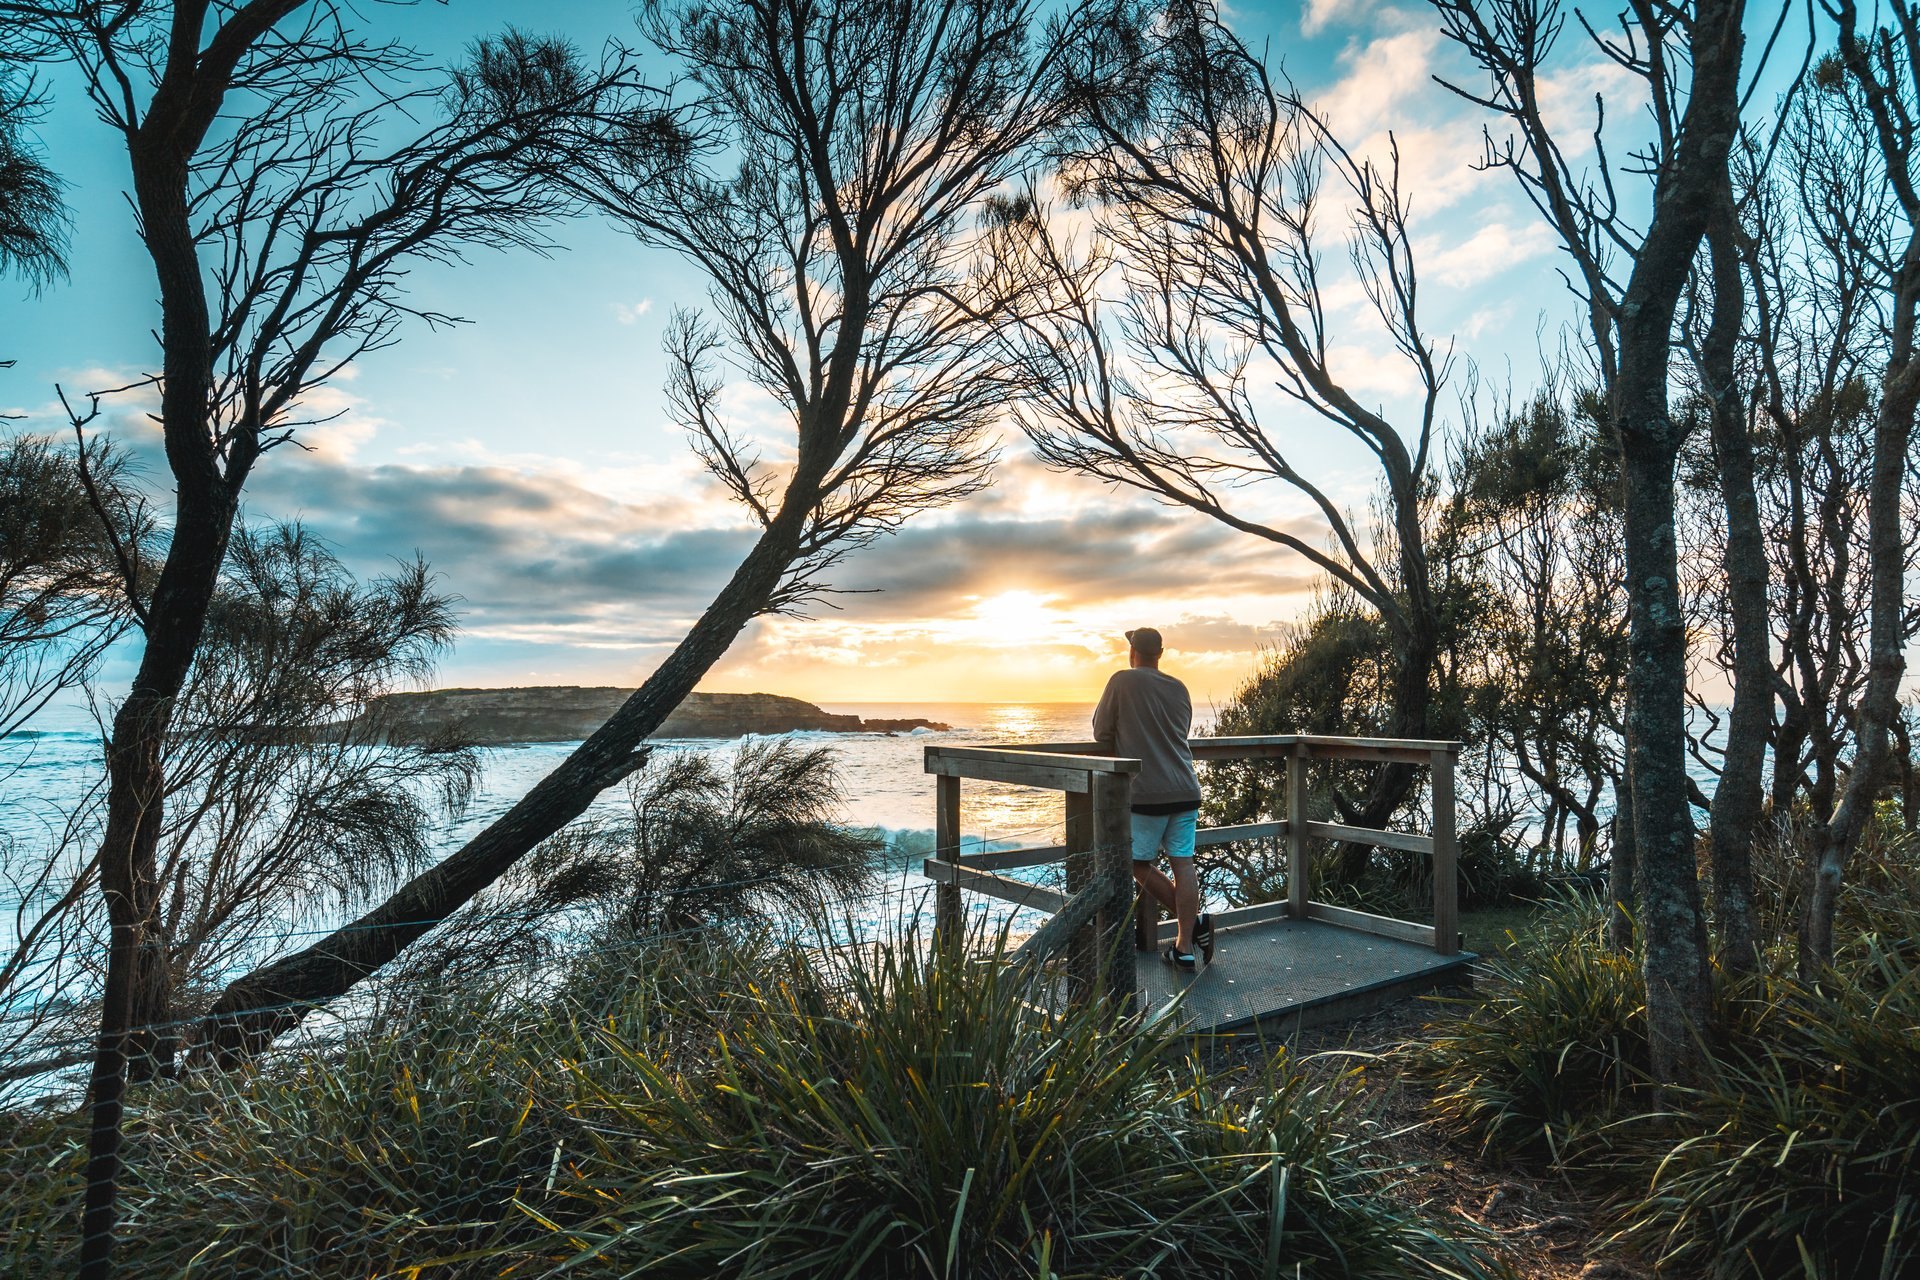 standing at the lookout in South Durras